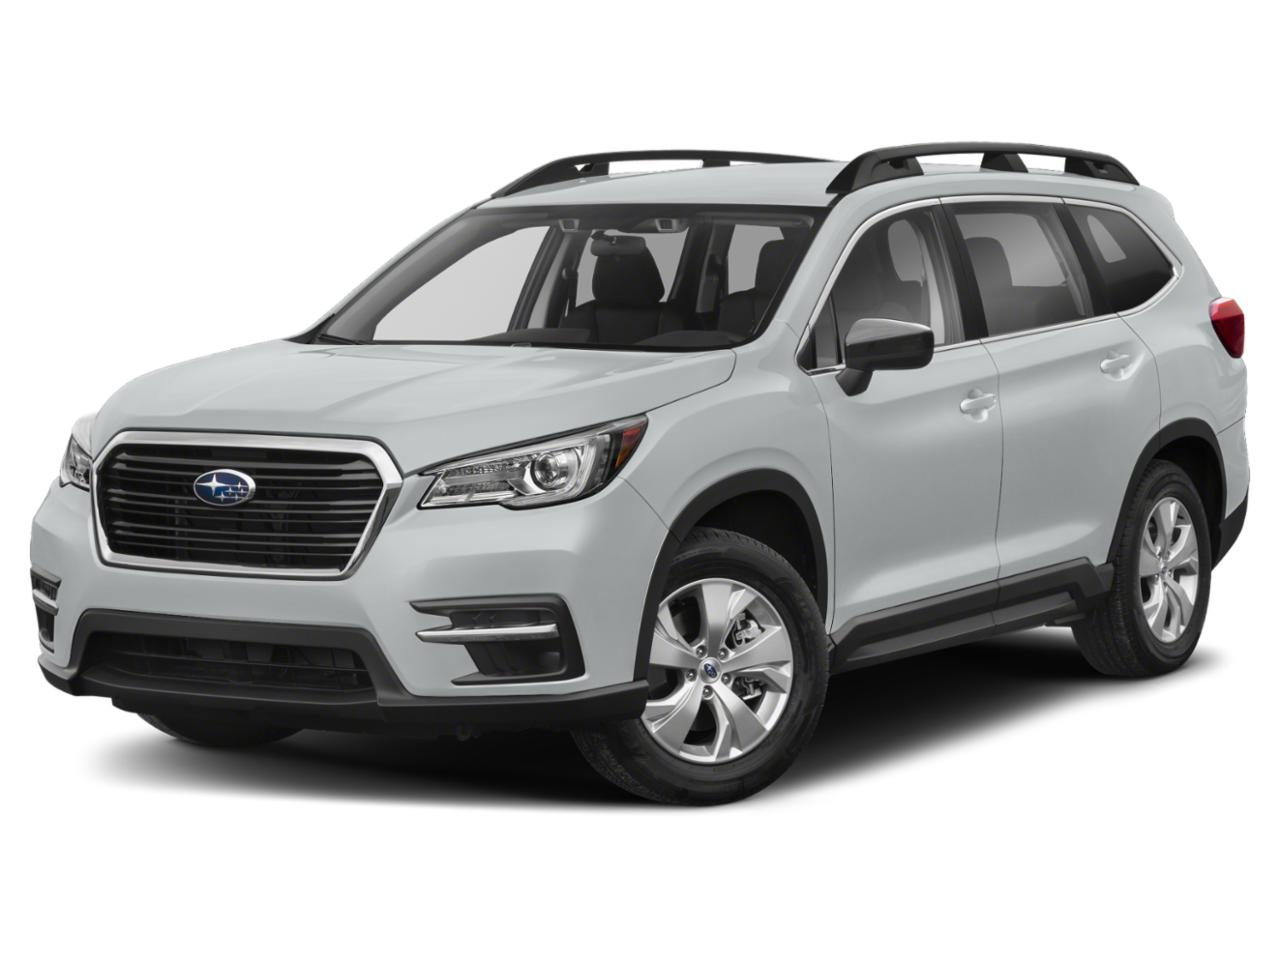 2021 Subaru Ascent Vehicle Photo in Oshkosh, WI 54904